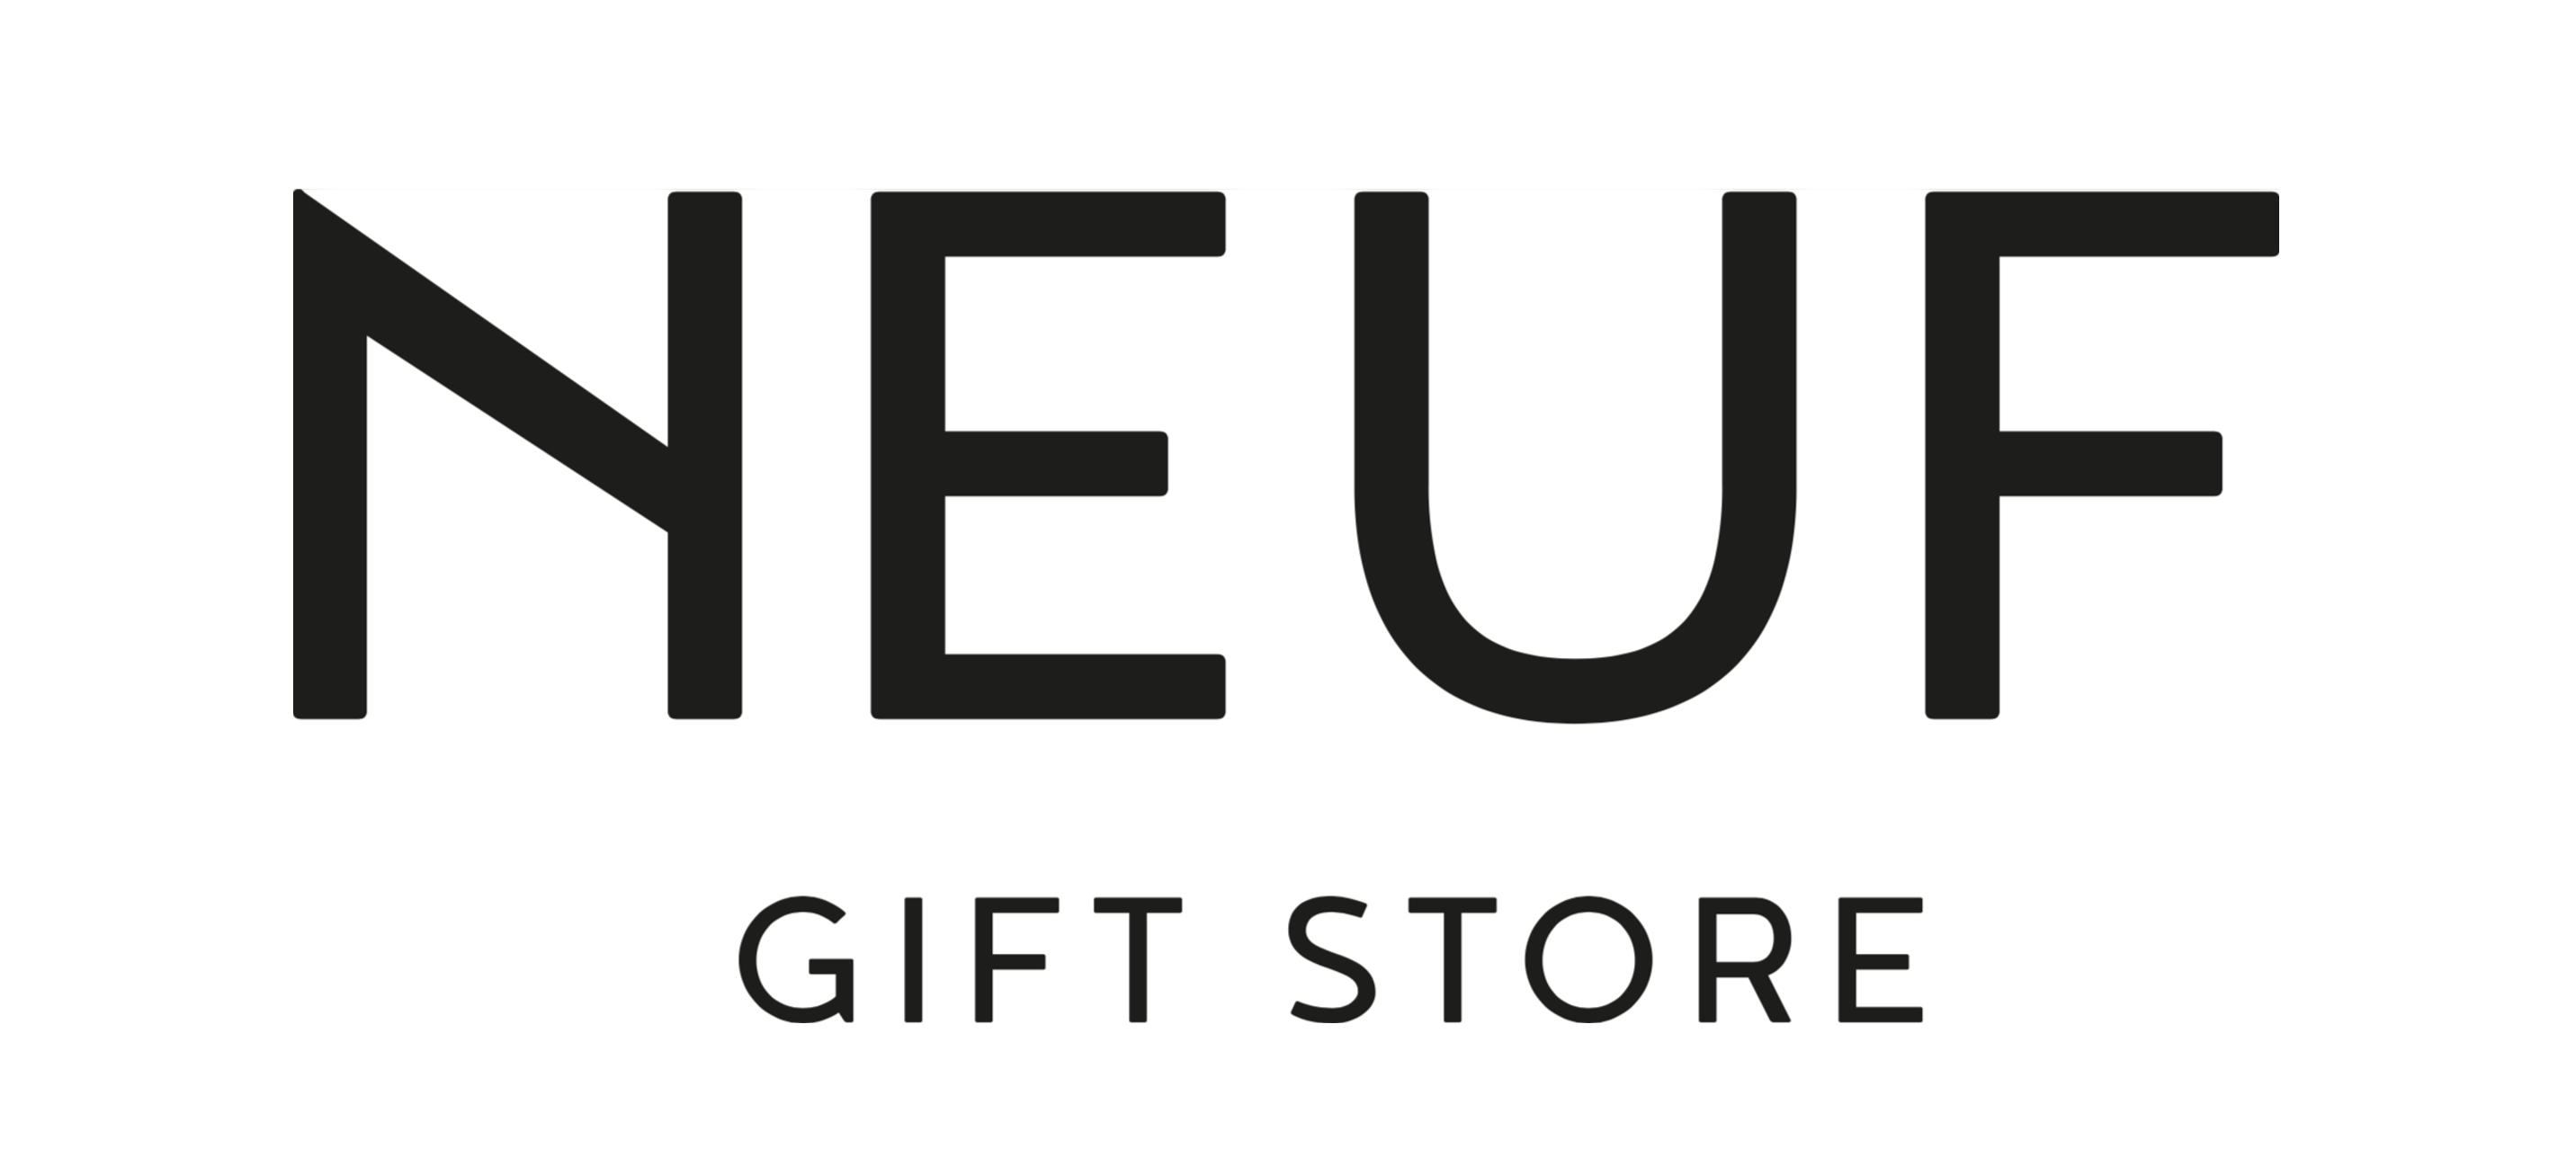 Gift Store - Treat yourself, and others